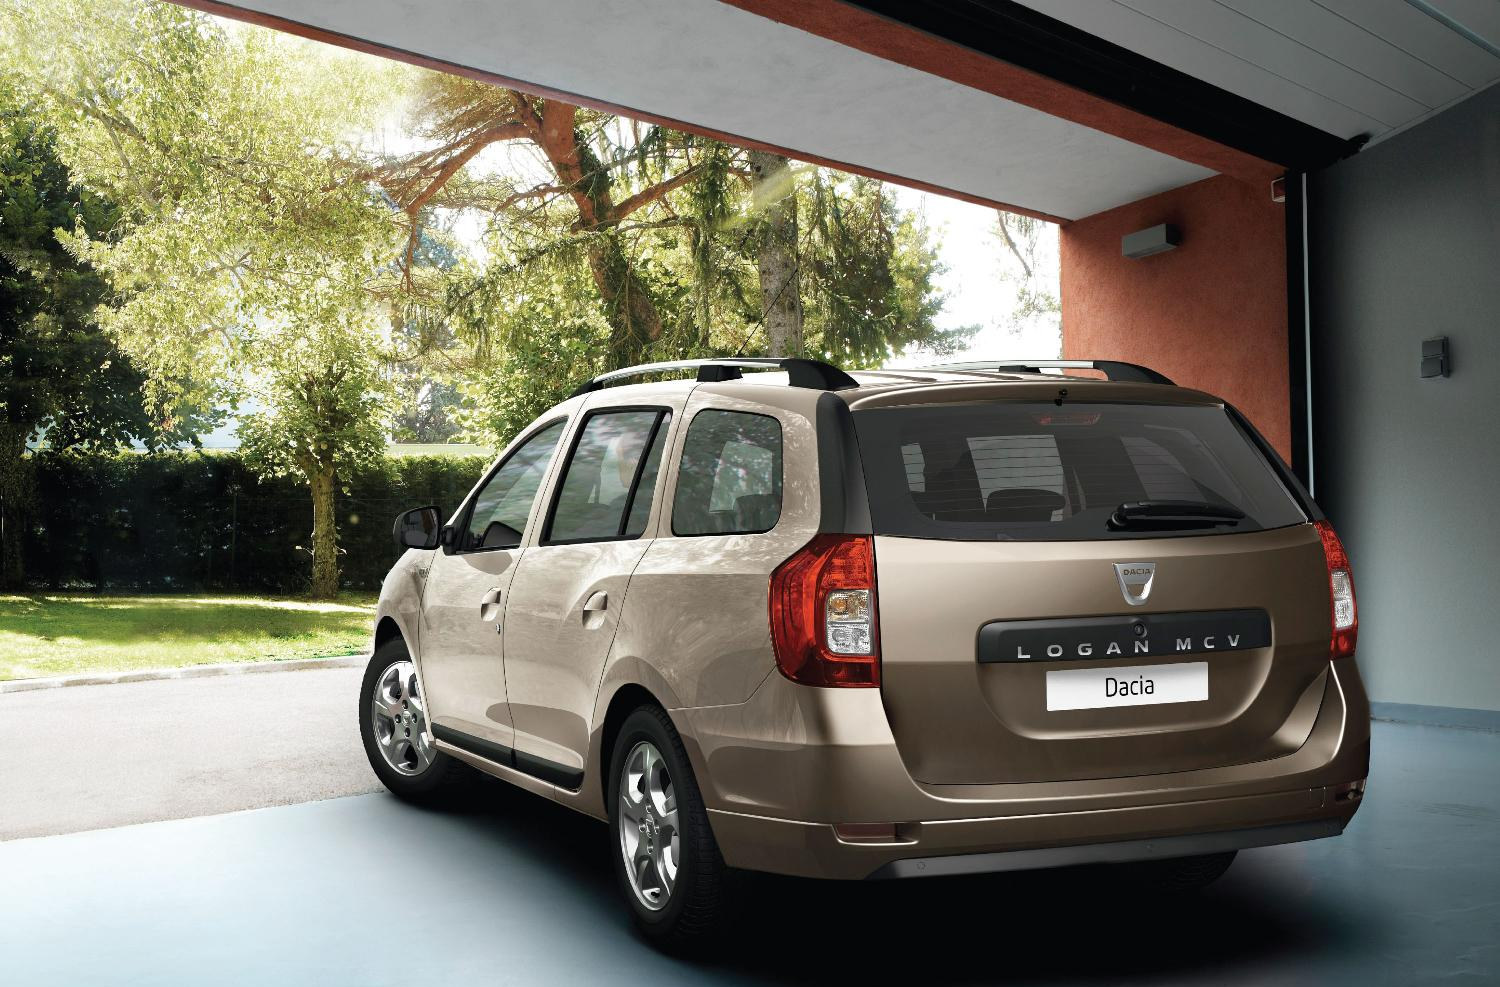 Dacia Logan MCV 2 at Dacia Logan MCV Priced from £6,995 in the UK